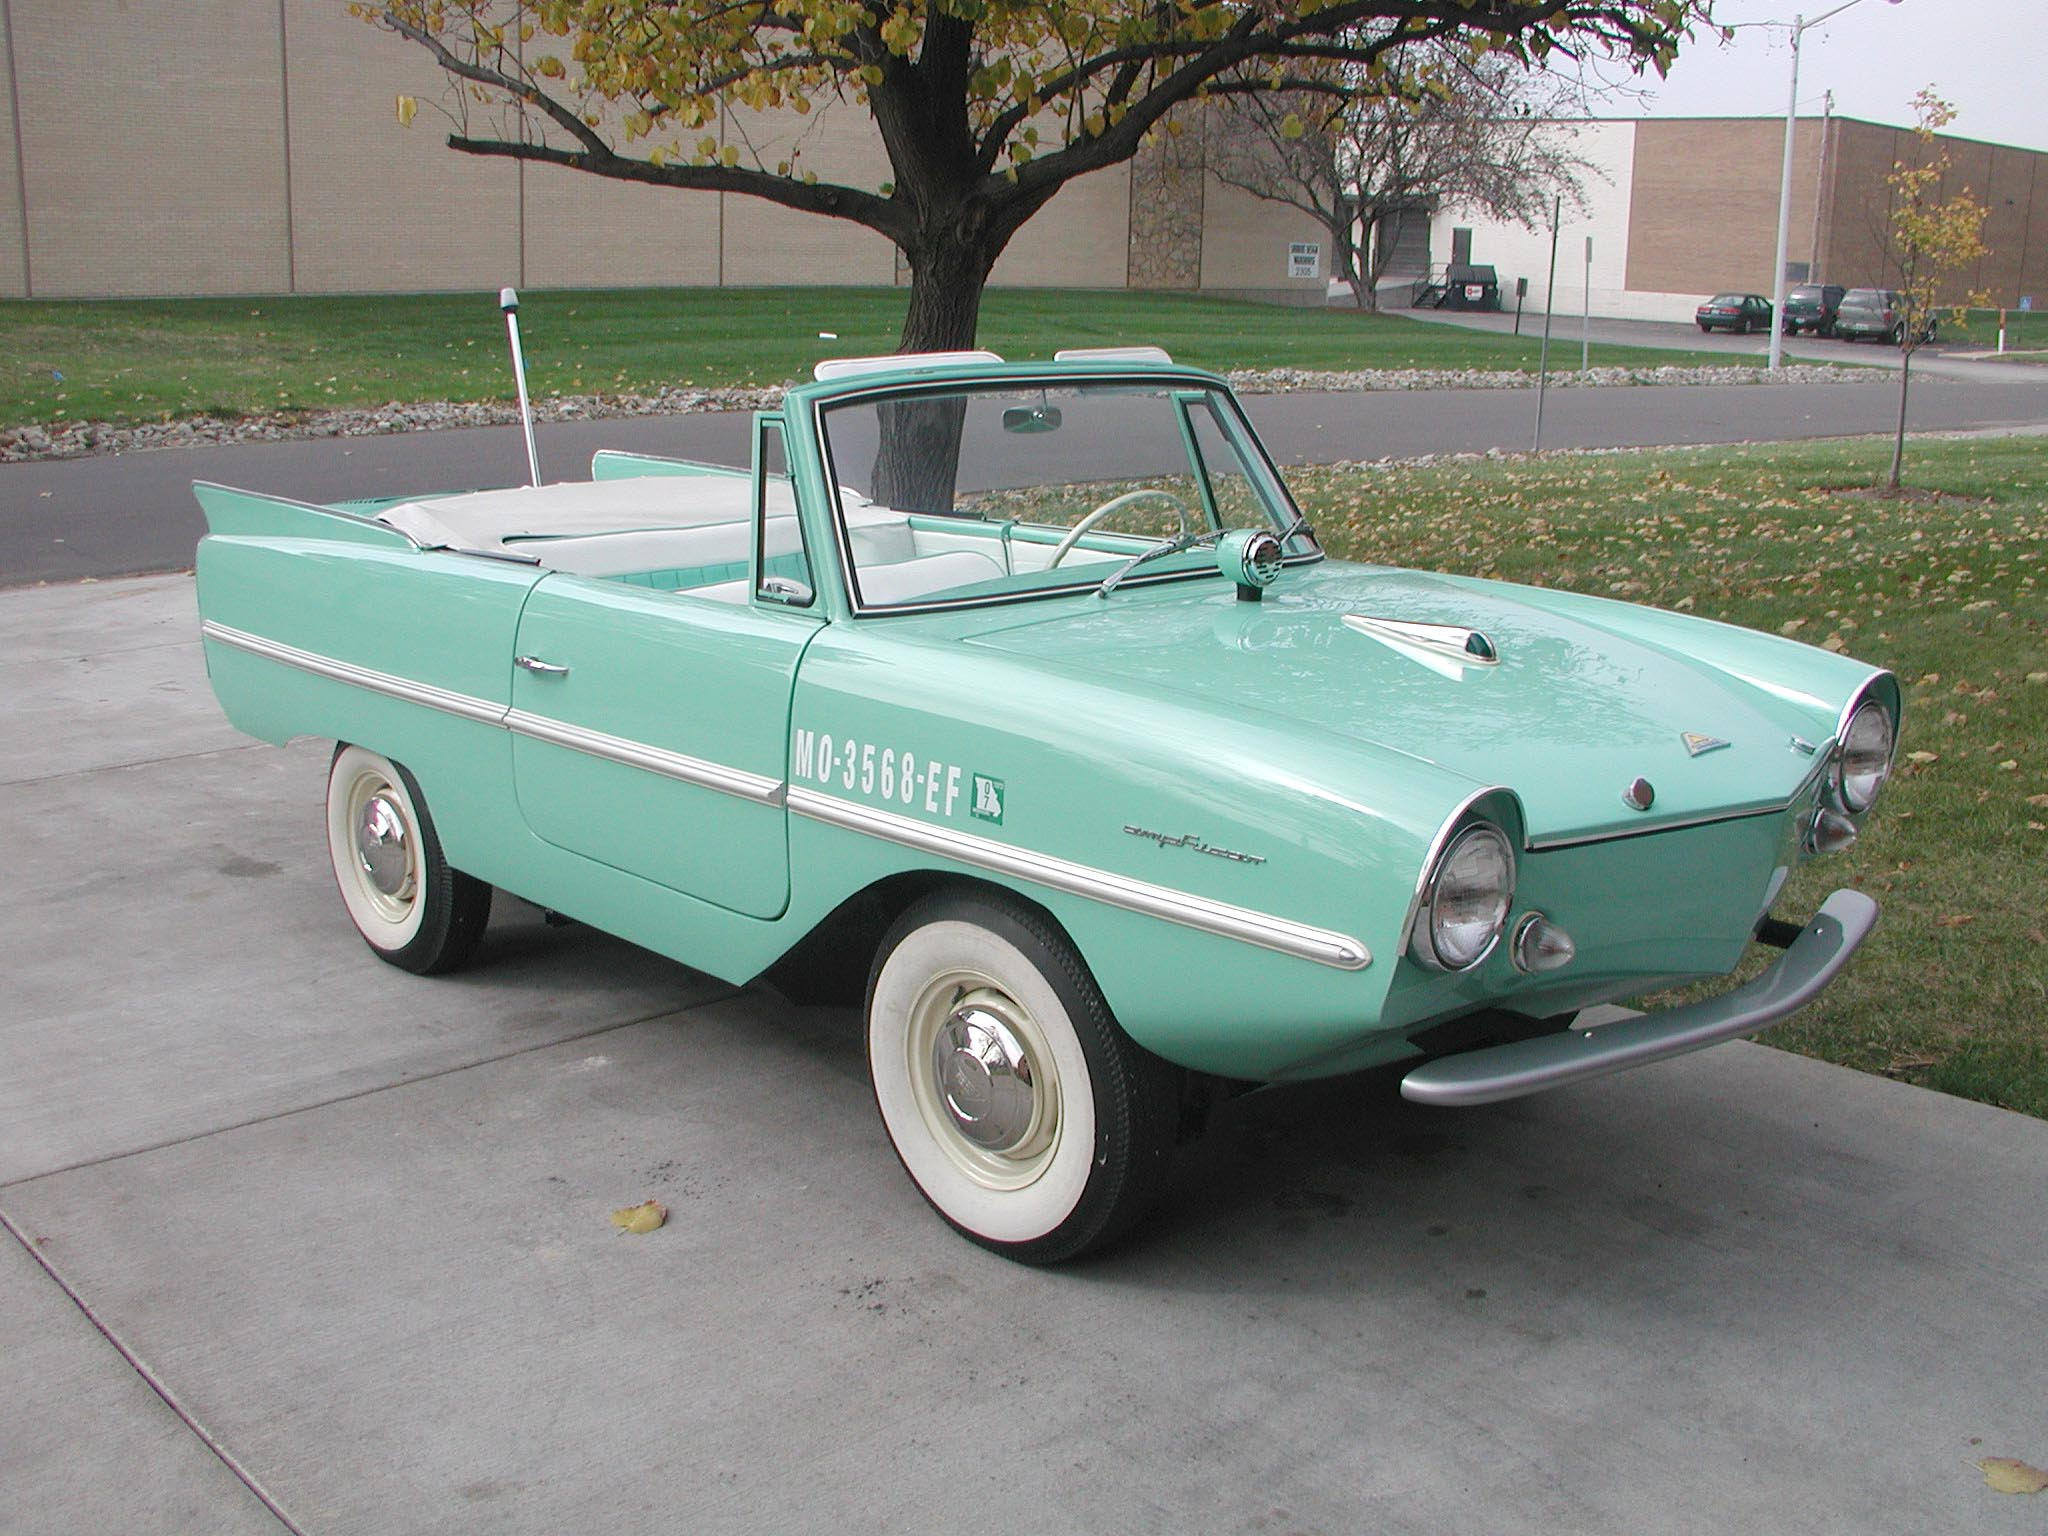 Classic Amphibious Car For Sale